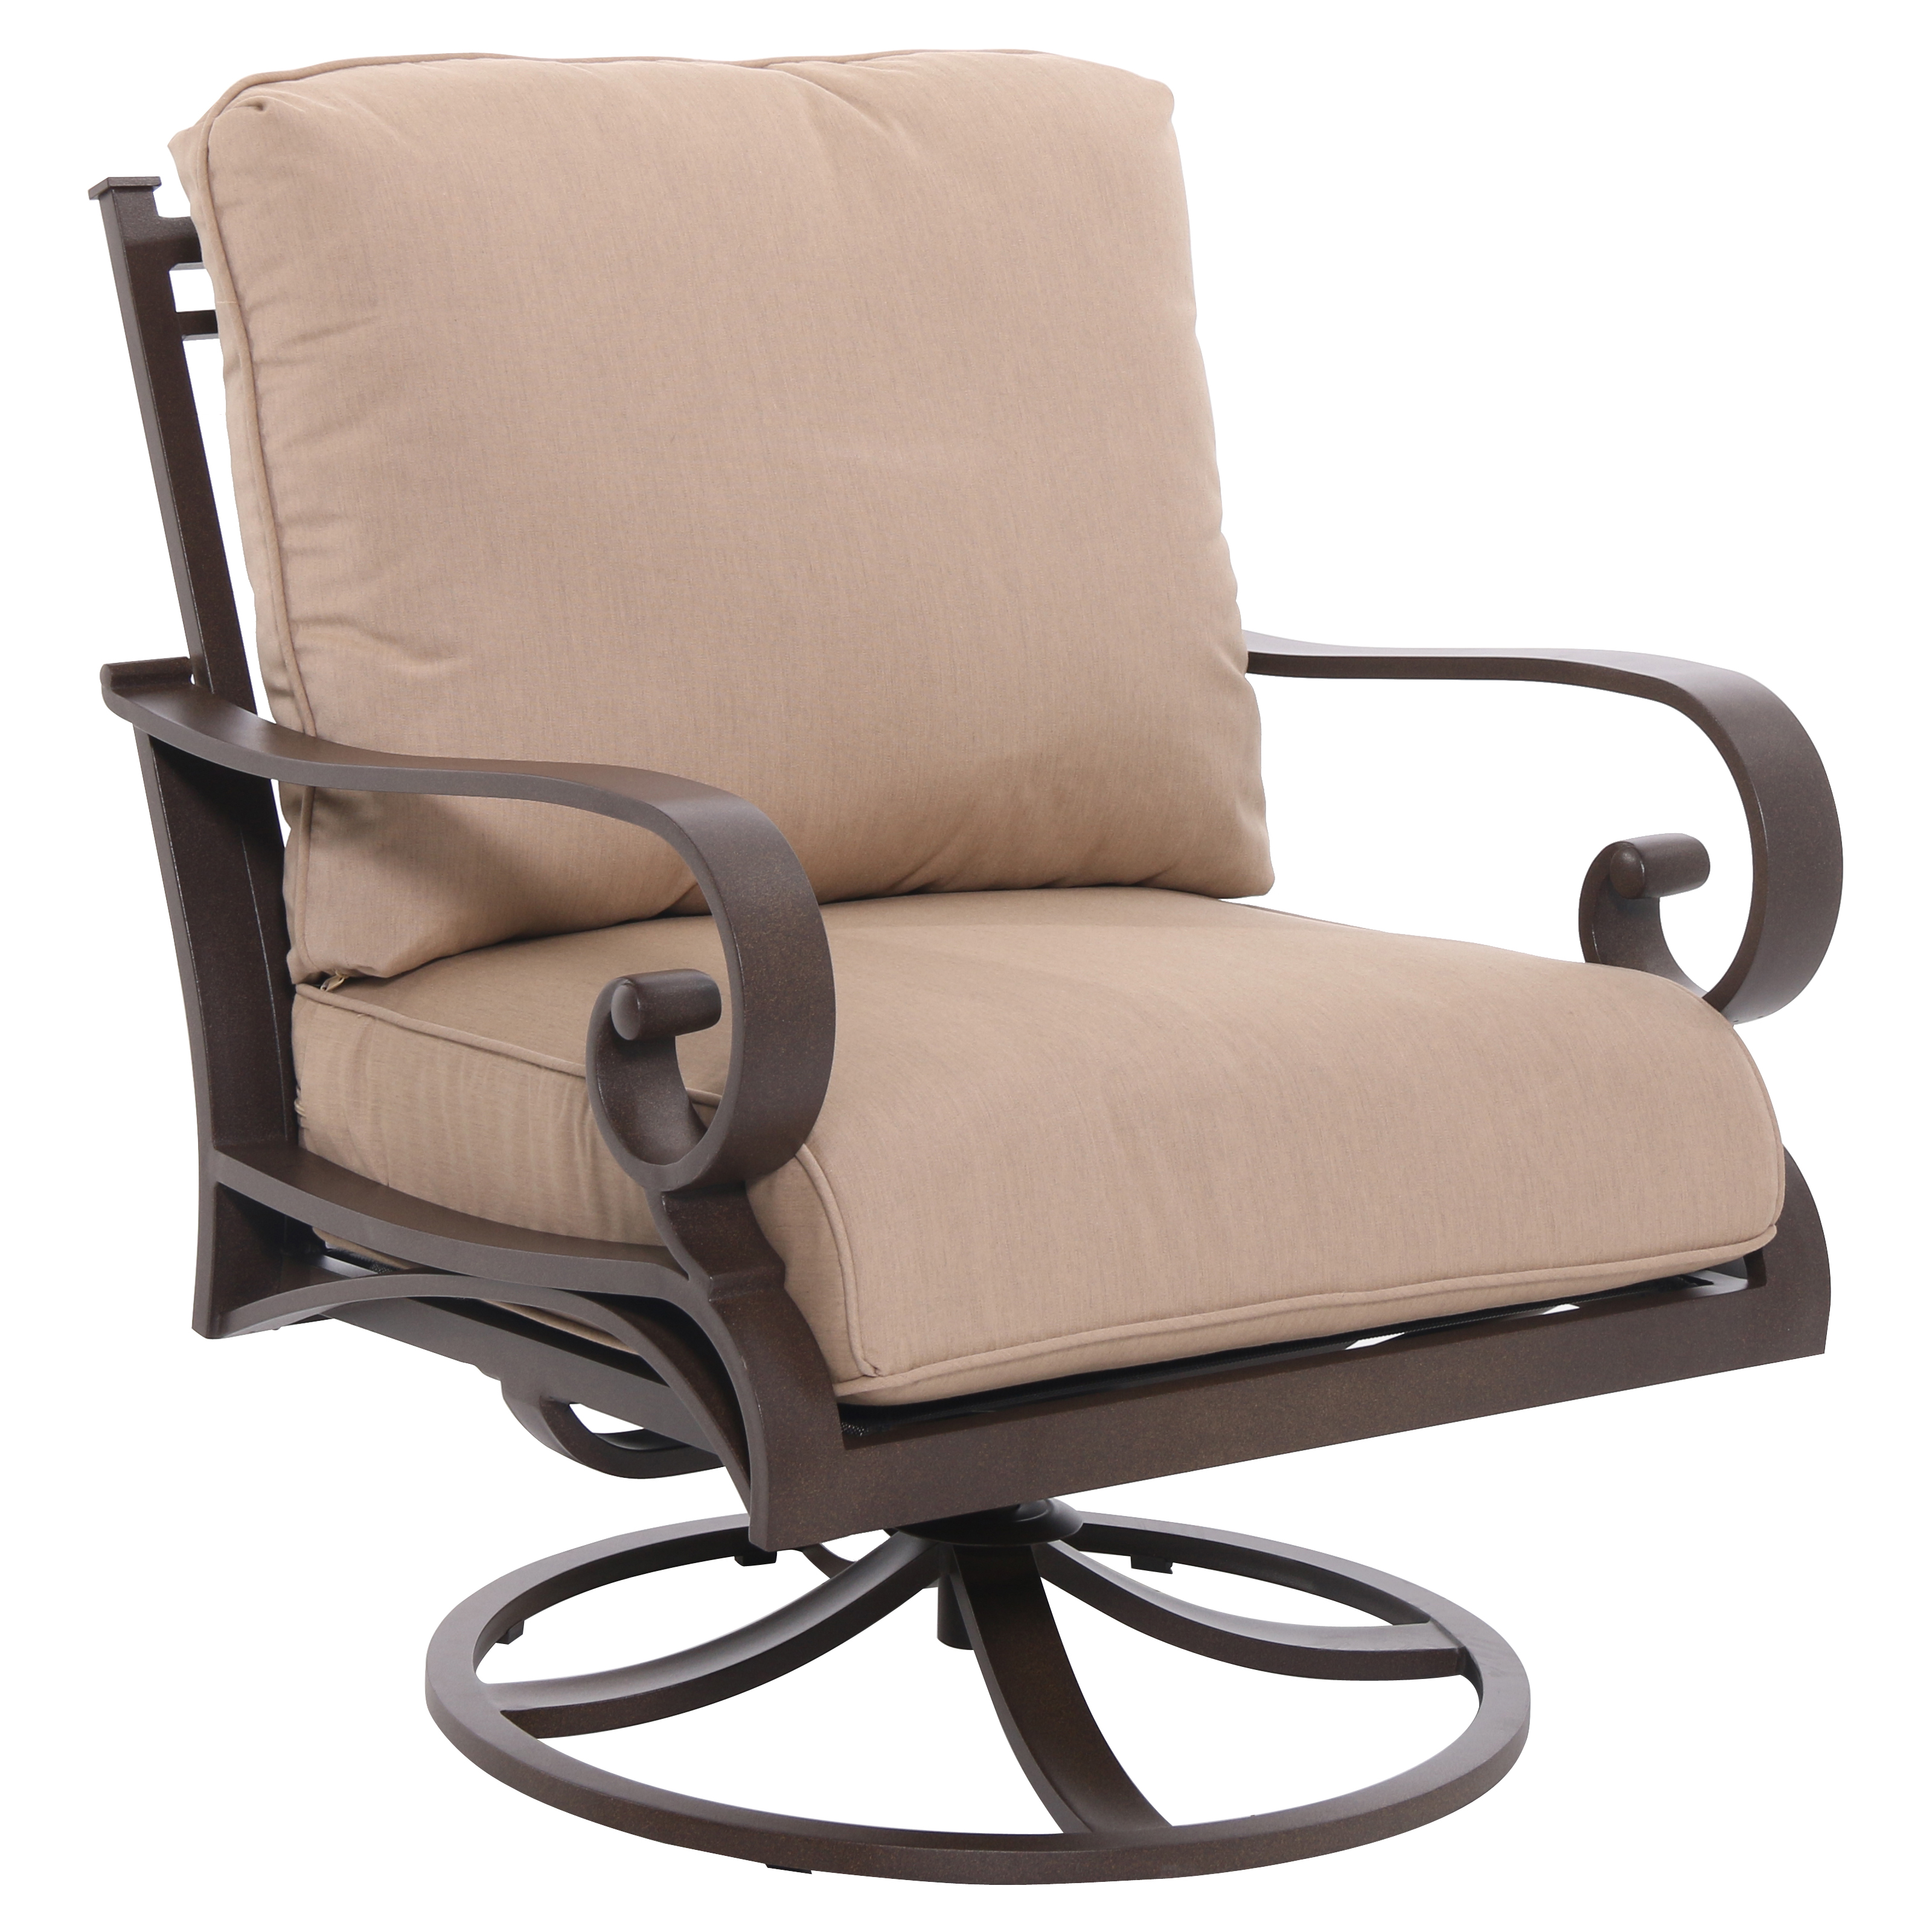 Royal Garden Rivera Patio Swivel Lounge Chair with Cushions